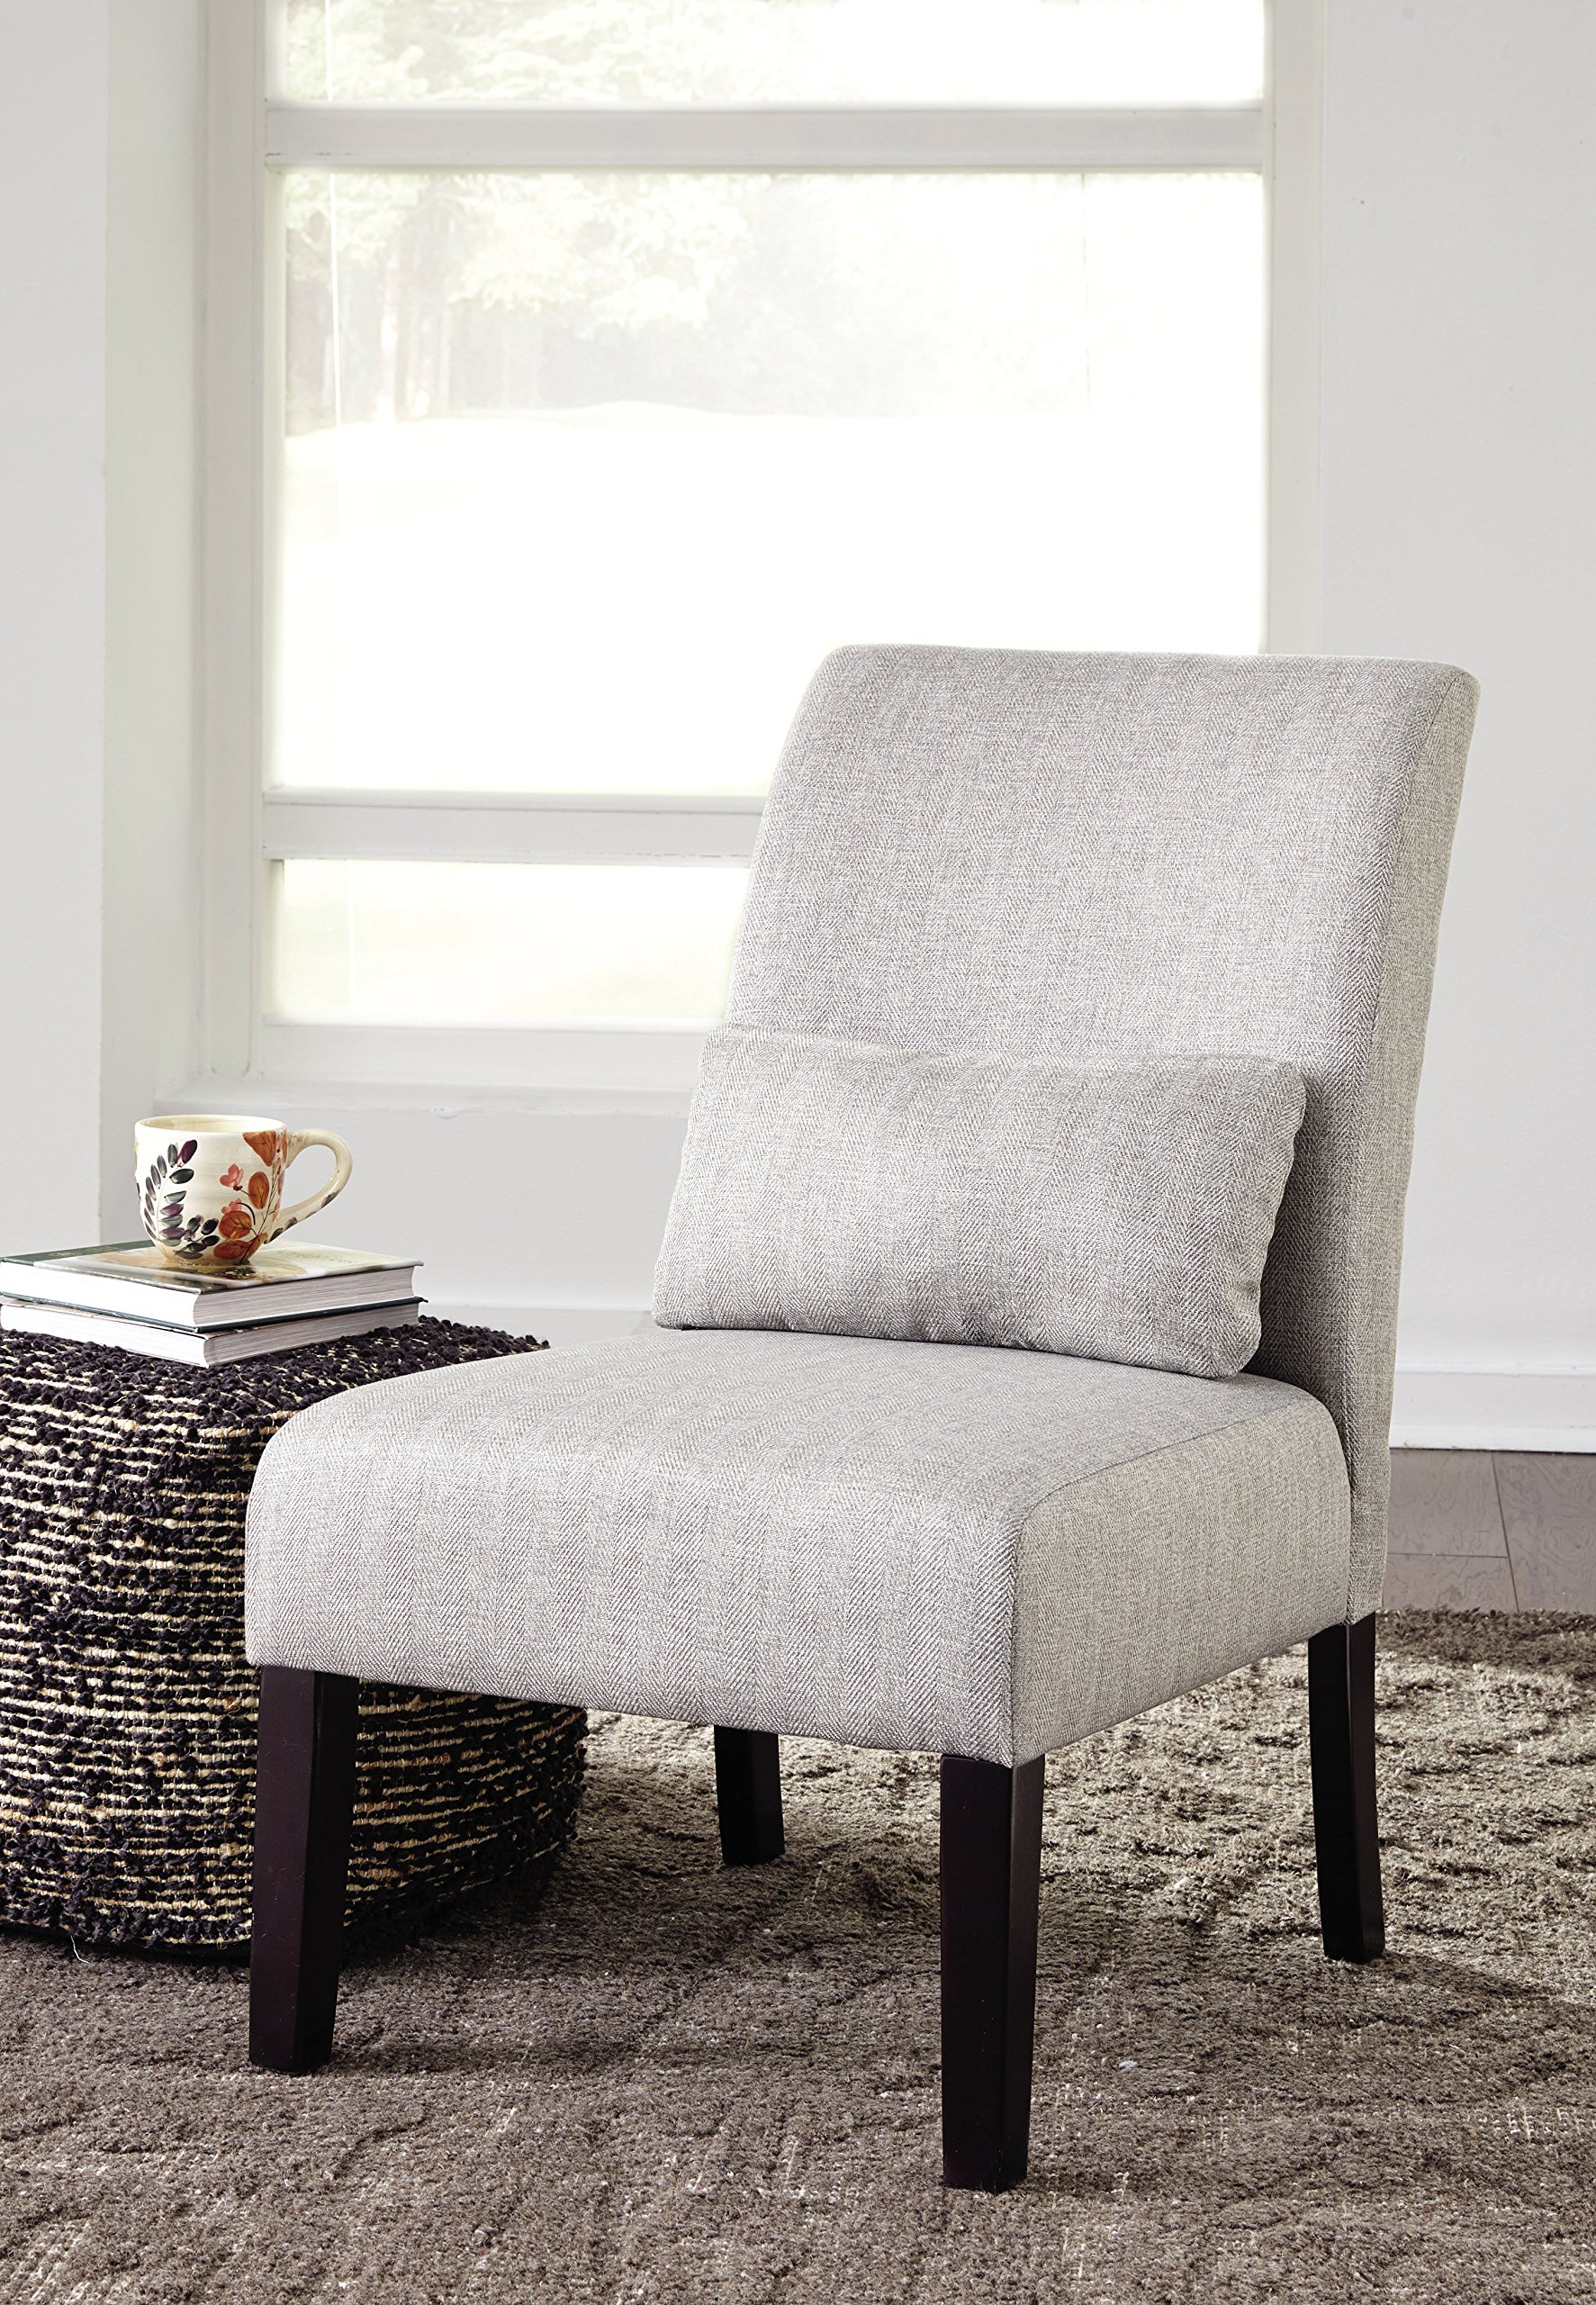 Ashley Furniture Signature Design - Sesto Accent Chair w/Pillow - Contemporary - Light Gray - Black Finish Legs by Signature Design by Ashley (Image #2)